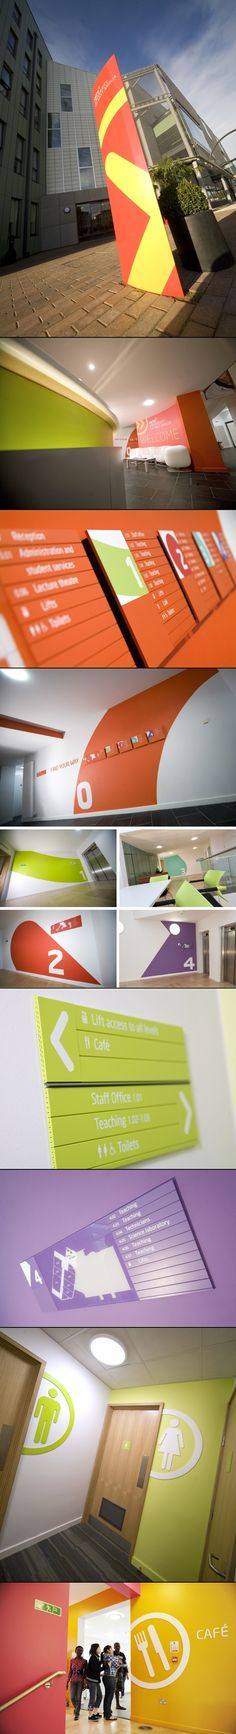 INTO University of East Anglia way-finding signage | Designer: Richard Wise